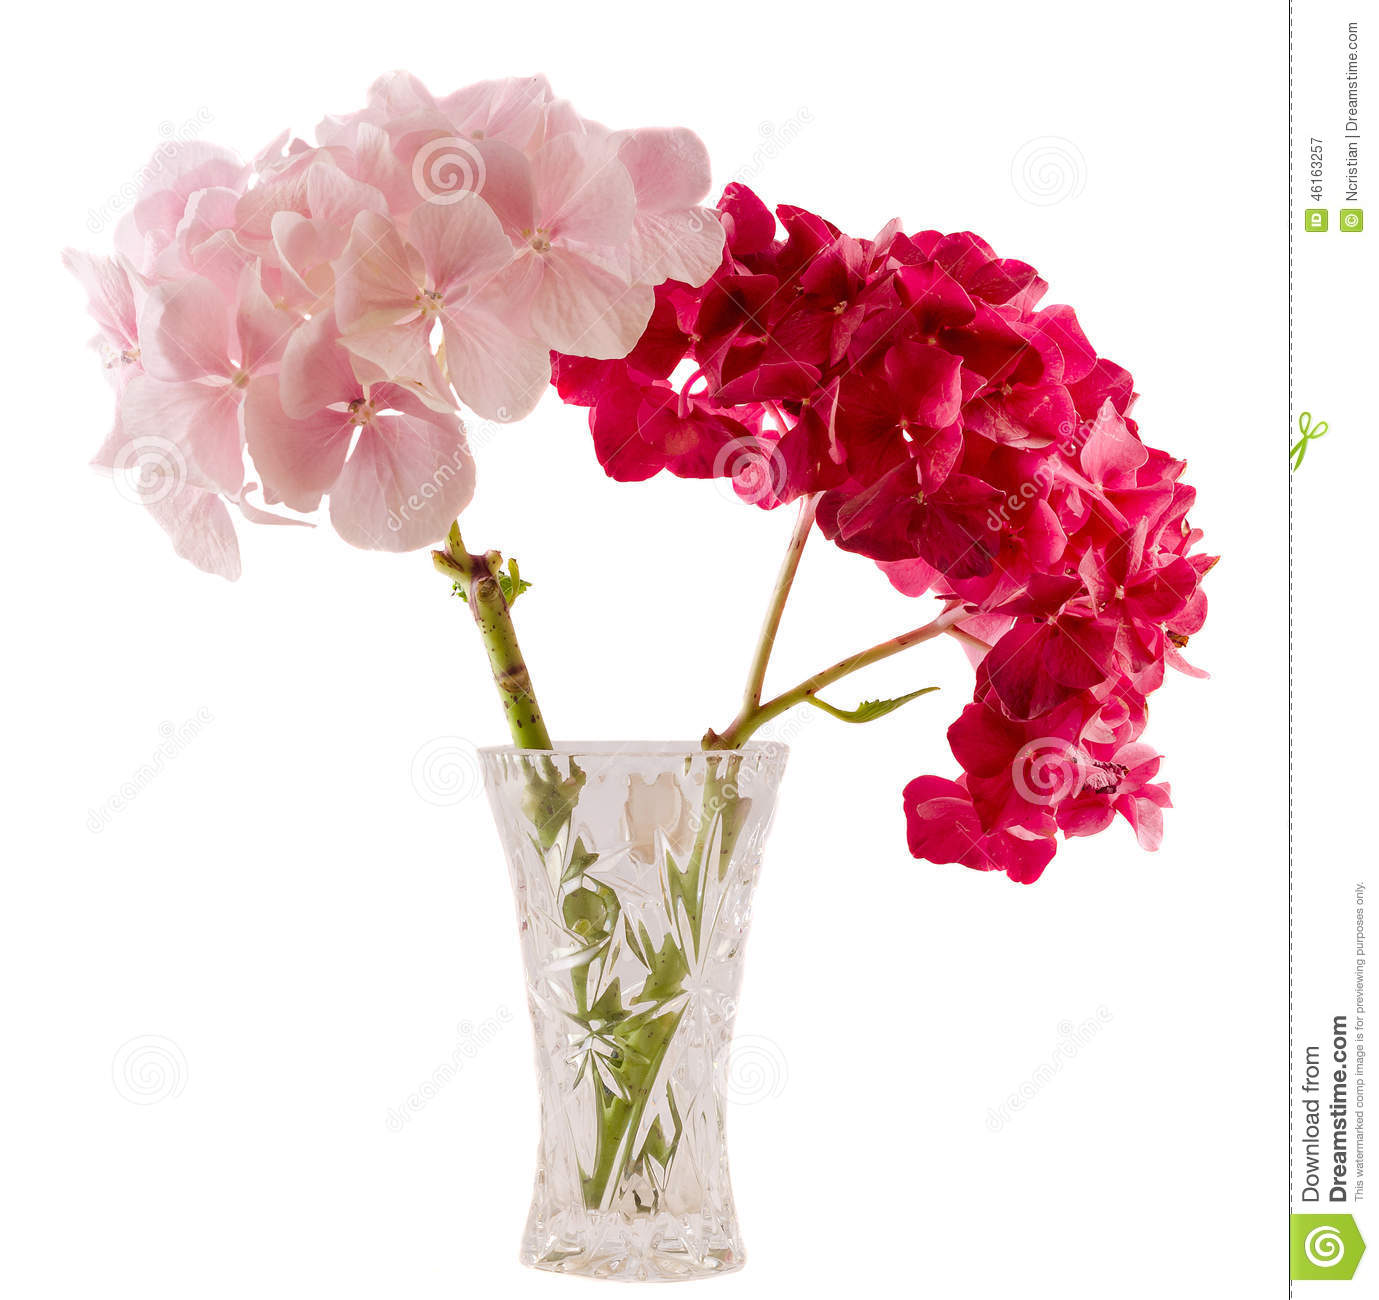 Purple And Pink Hortensia Hydrangea Flower In A Transparent Vase Close Up Isolated White Background